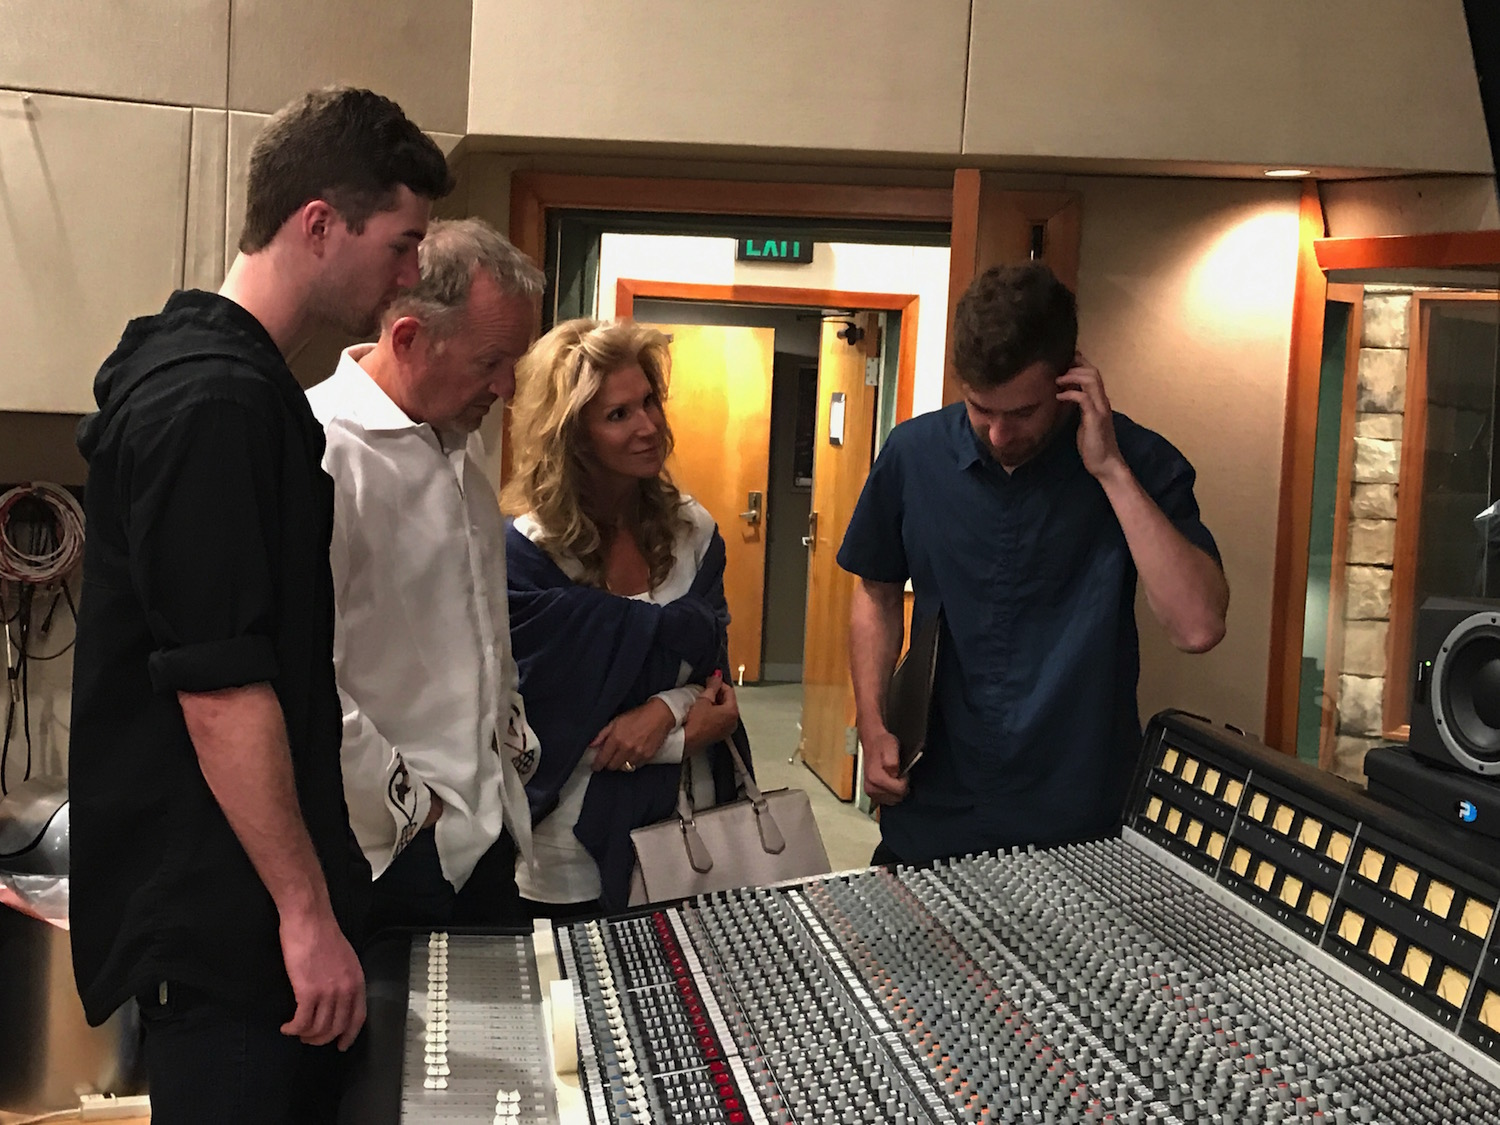 After the ceremony, Alex Boehnlein shows his parents and brother the SSL in the Studio A control room.